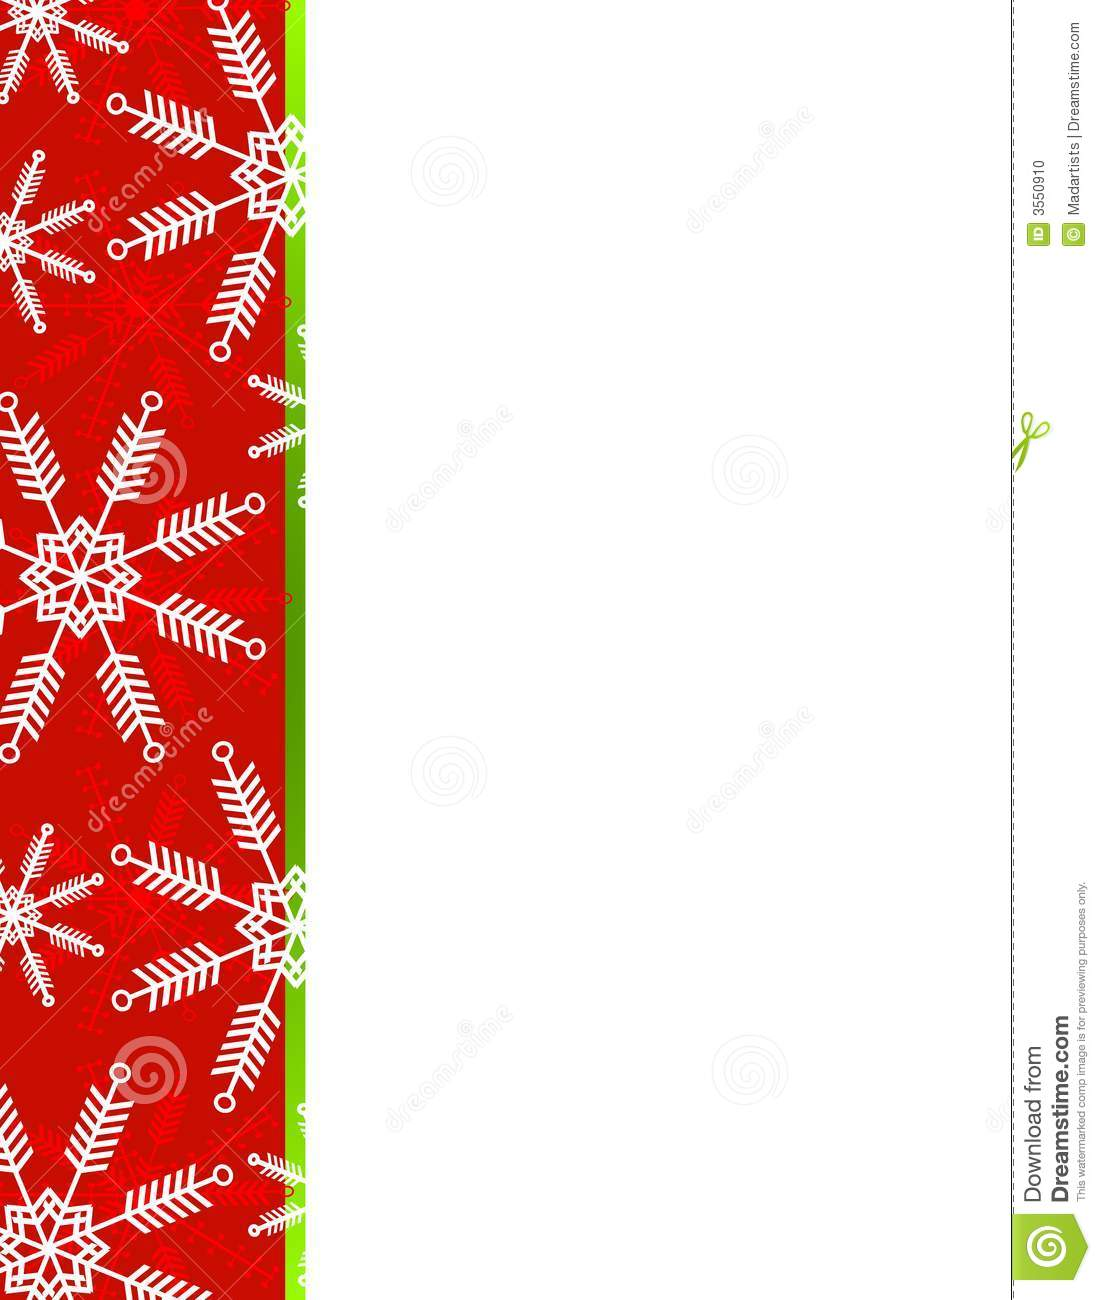 snowflakes christmas border stock illustration illustration of rh dreamstime com snowflake clip art borders free blue snowflake border clipart